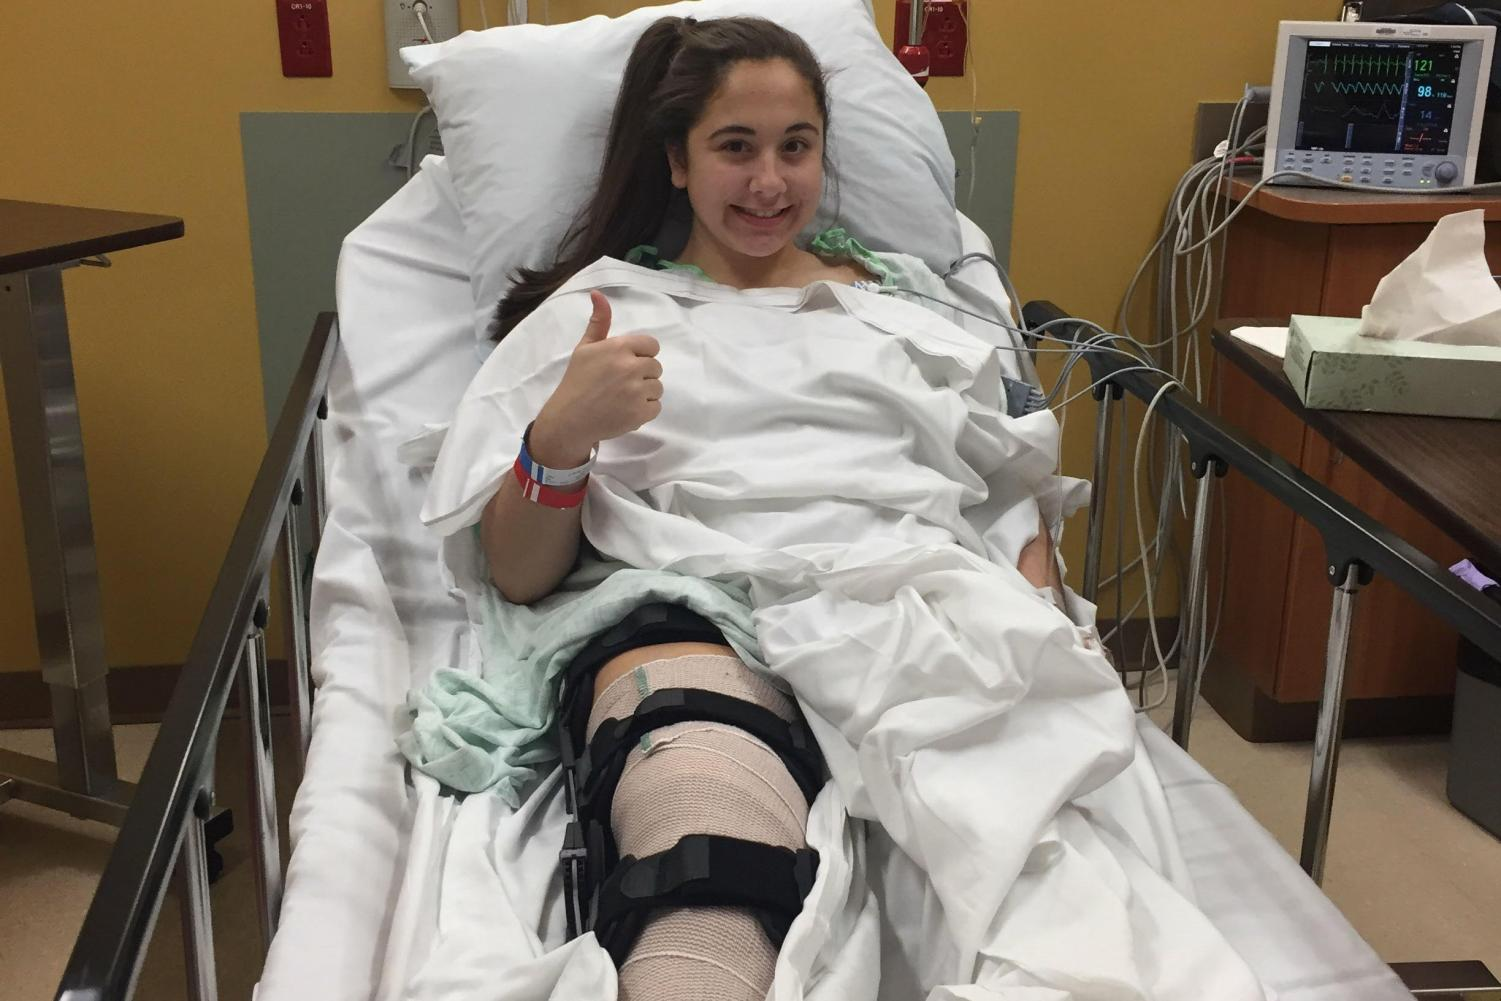 "Pictured is me, Sofia Barassi, sitting in my hospital bed after my ACL surgery in November of 2017. I tore my ACL playing field hockey and thought that it was the end of my career. Now I'm recovered and ready to play my favorite sport again. It was a very scary experience, but Arnold couldn't have stated it better, ""I've learned you need to go hard at what you love to do, because it can be taken from you at any time."""